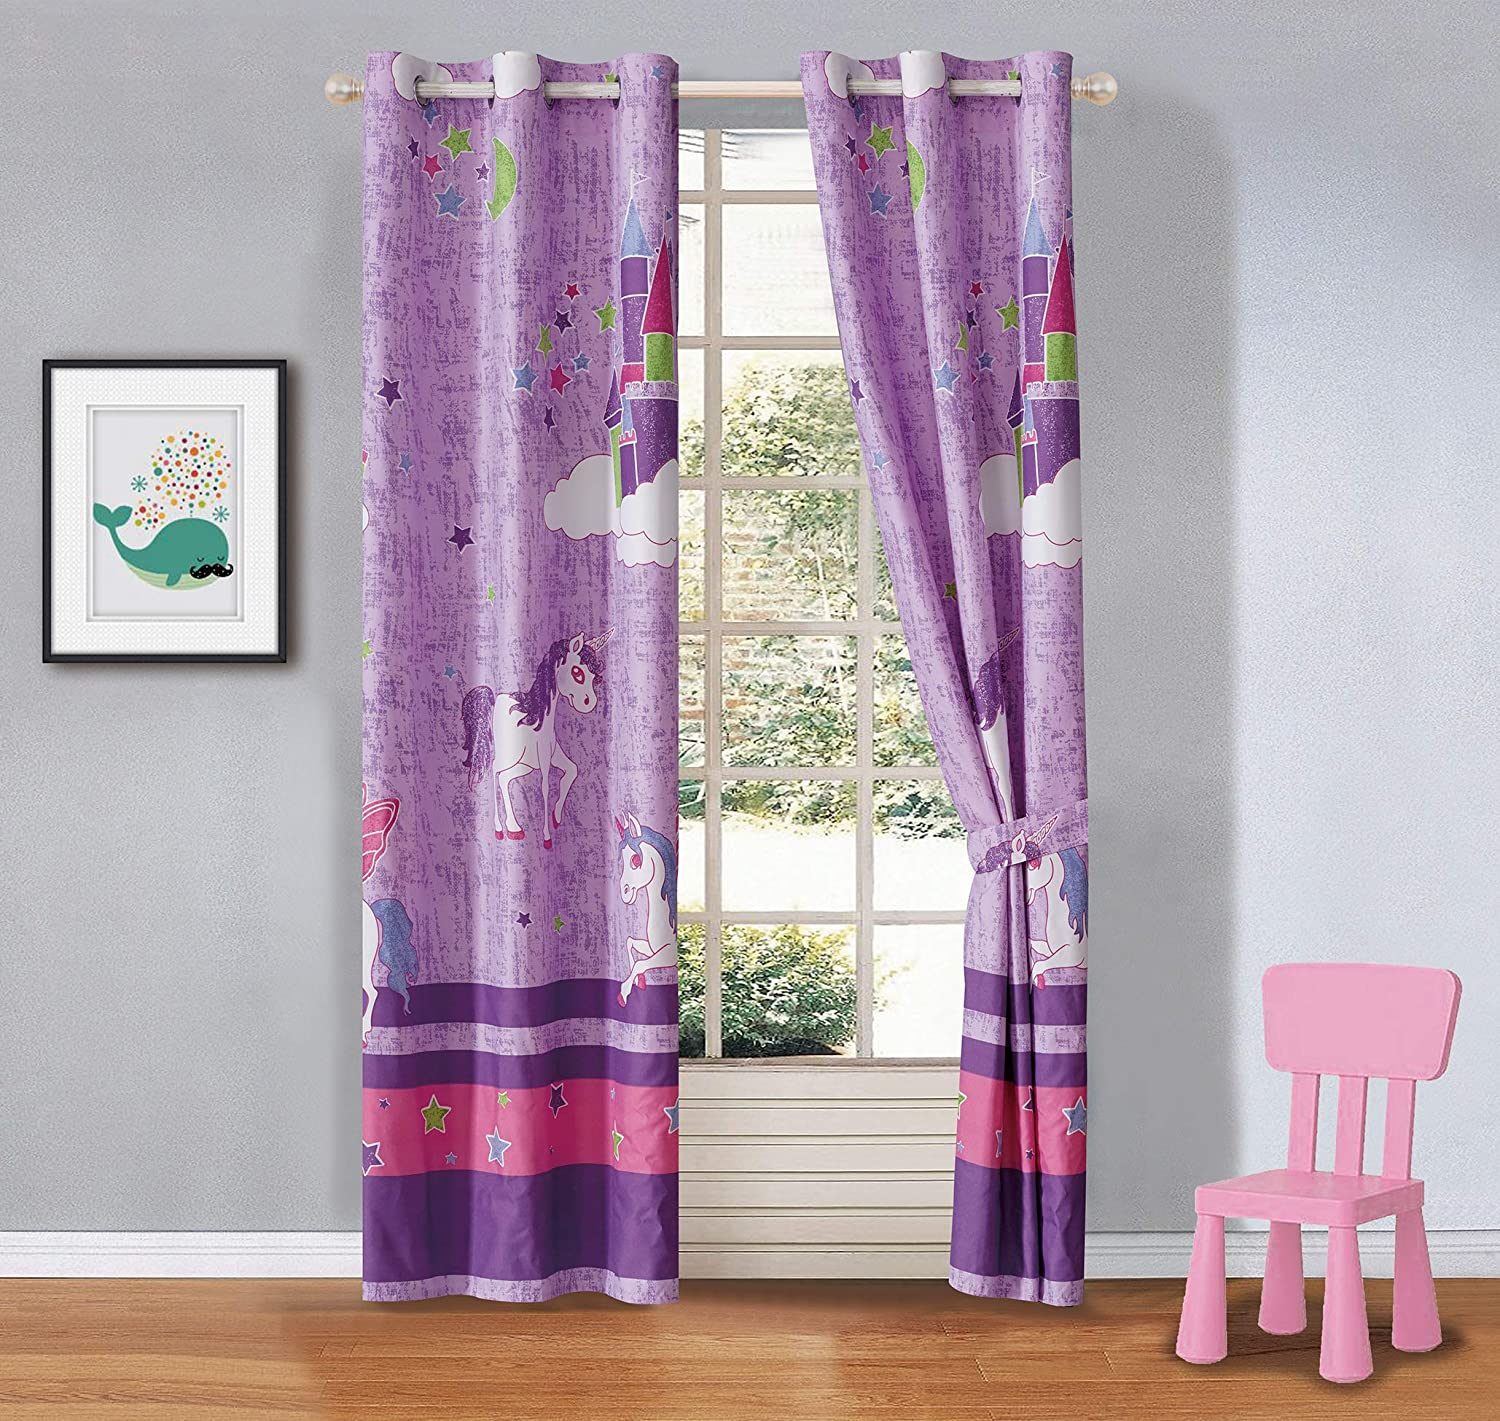 Better Home Style Purple Unicorn Rainbow Stars Printed Fun Multicolors Pink Purple Kids/Girls Room Window Curtain Treatment Drapes 2 Piece Set with Grommets (Unicorn Castle Lavender)